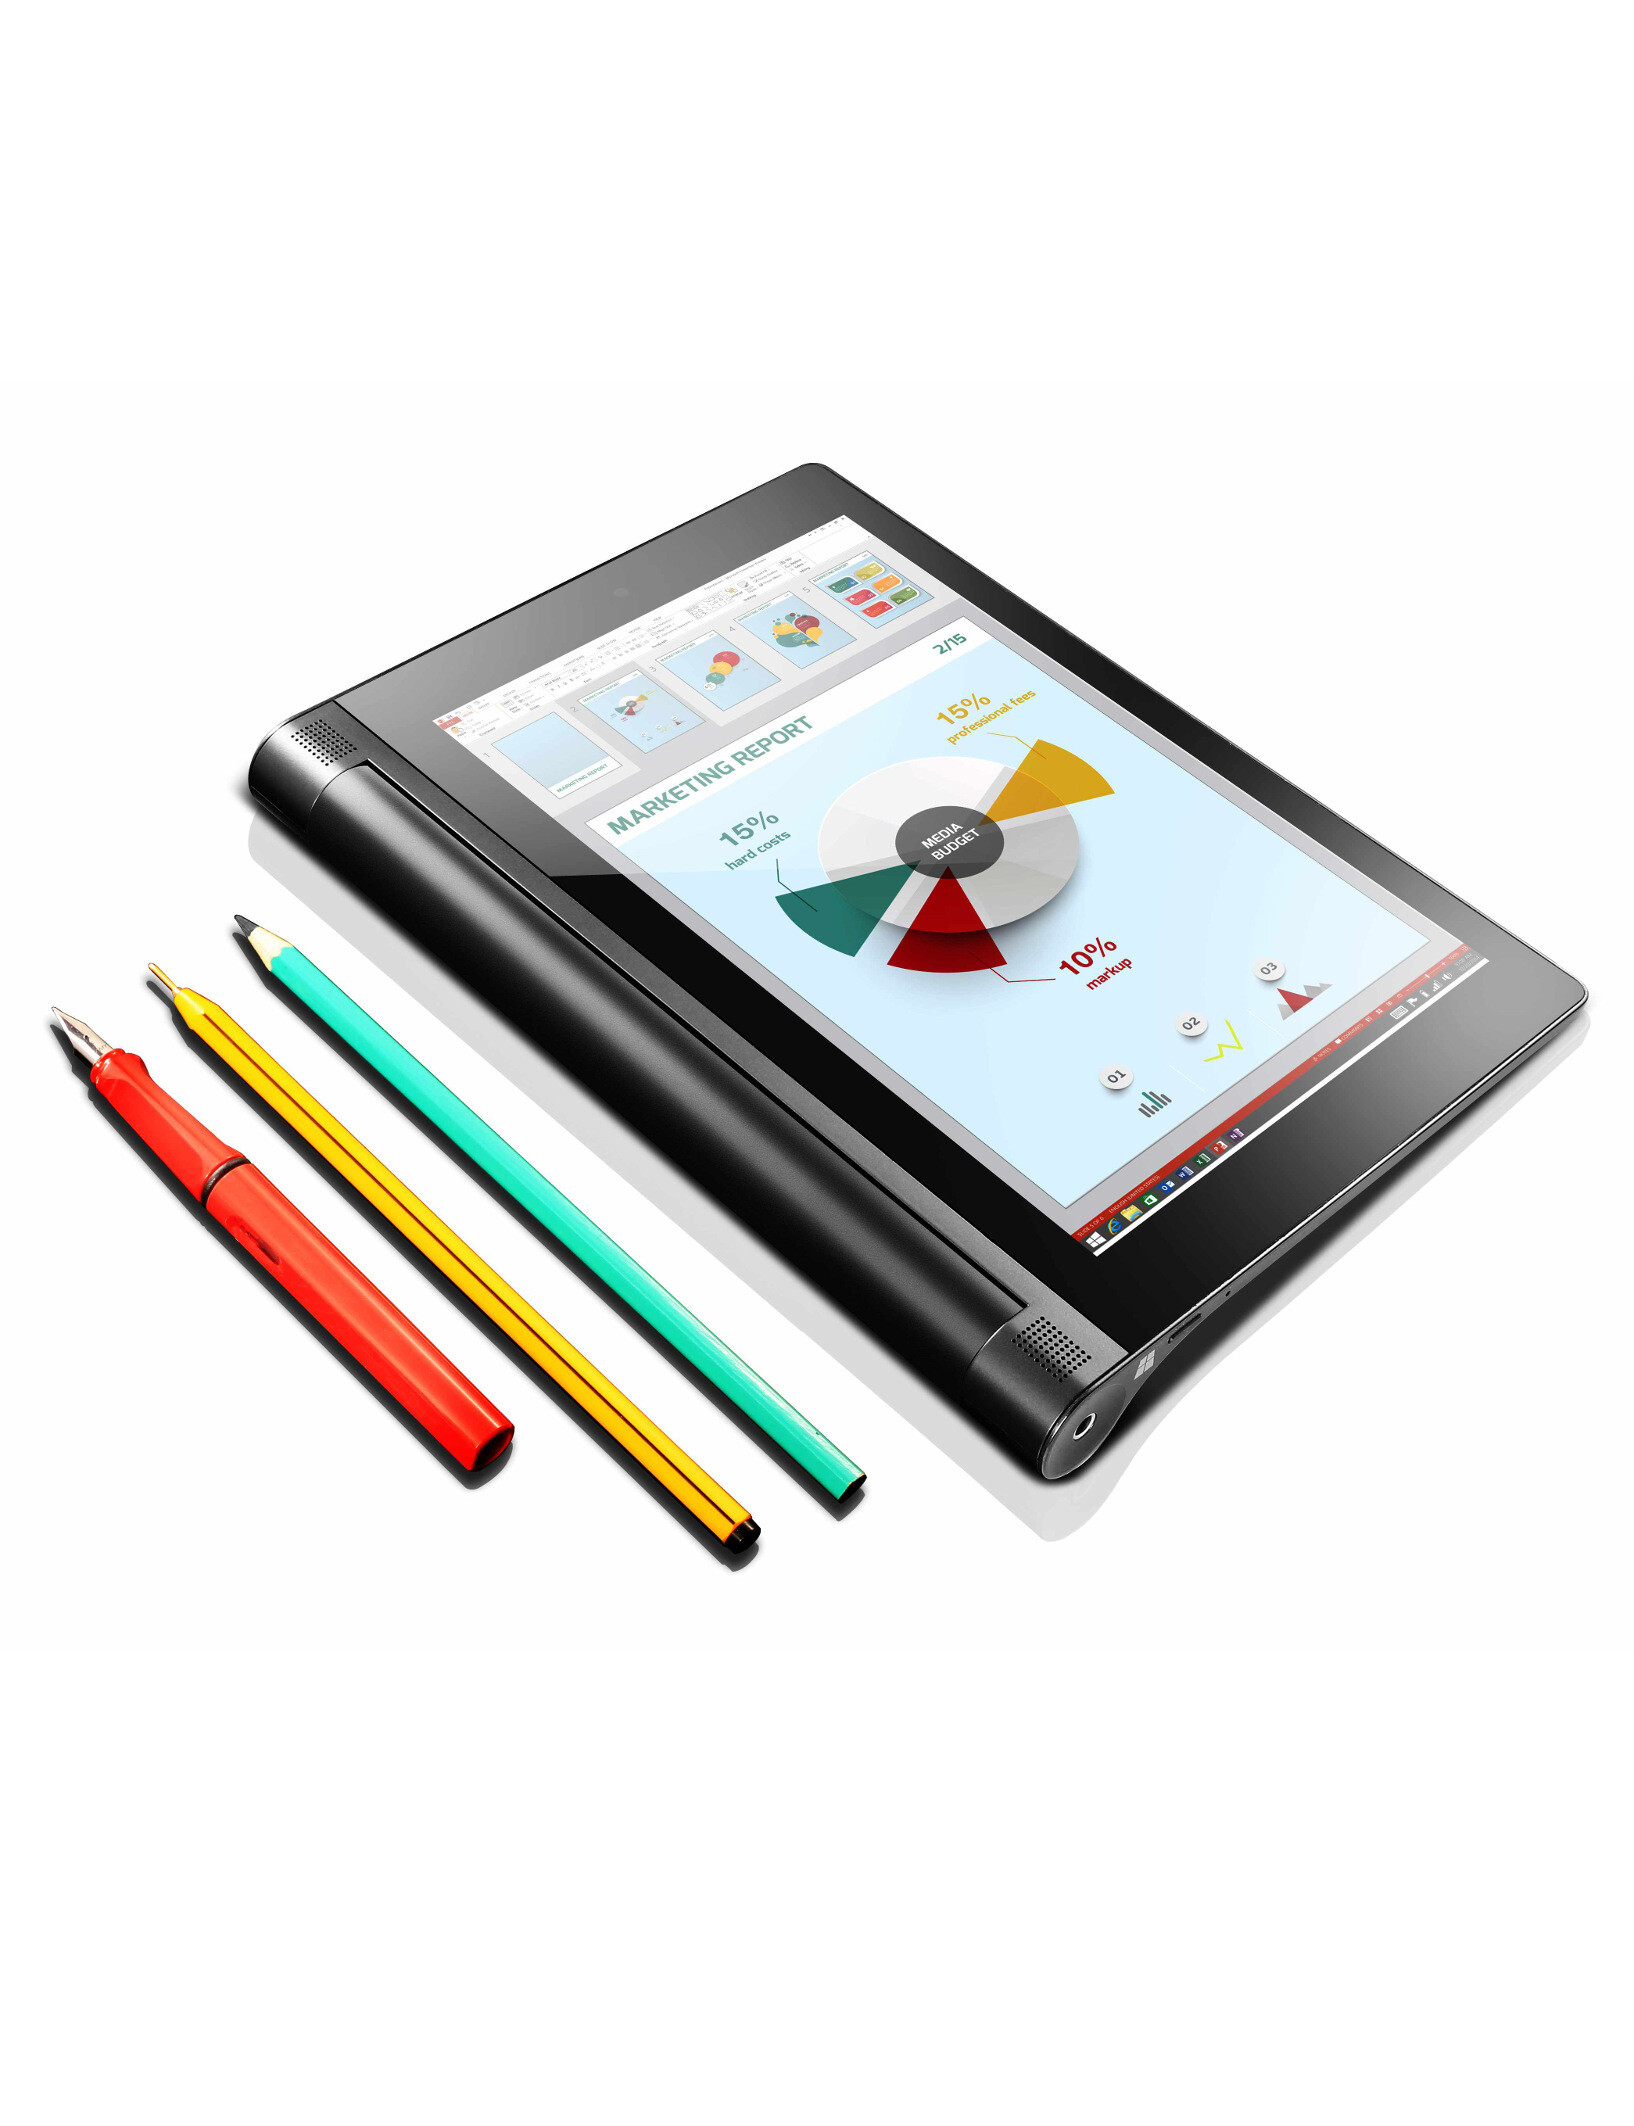 Lenovo YOGA Tablet 2 8-inch (Windows) with AnyPen specs